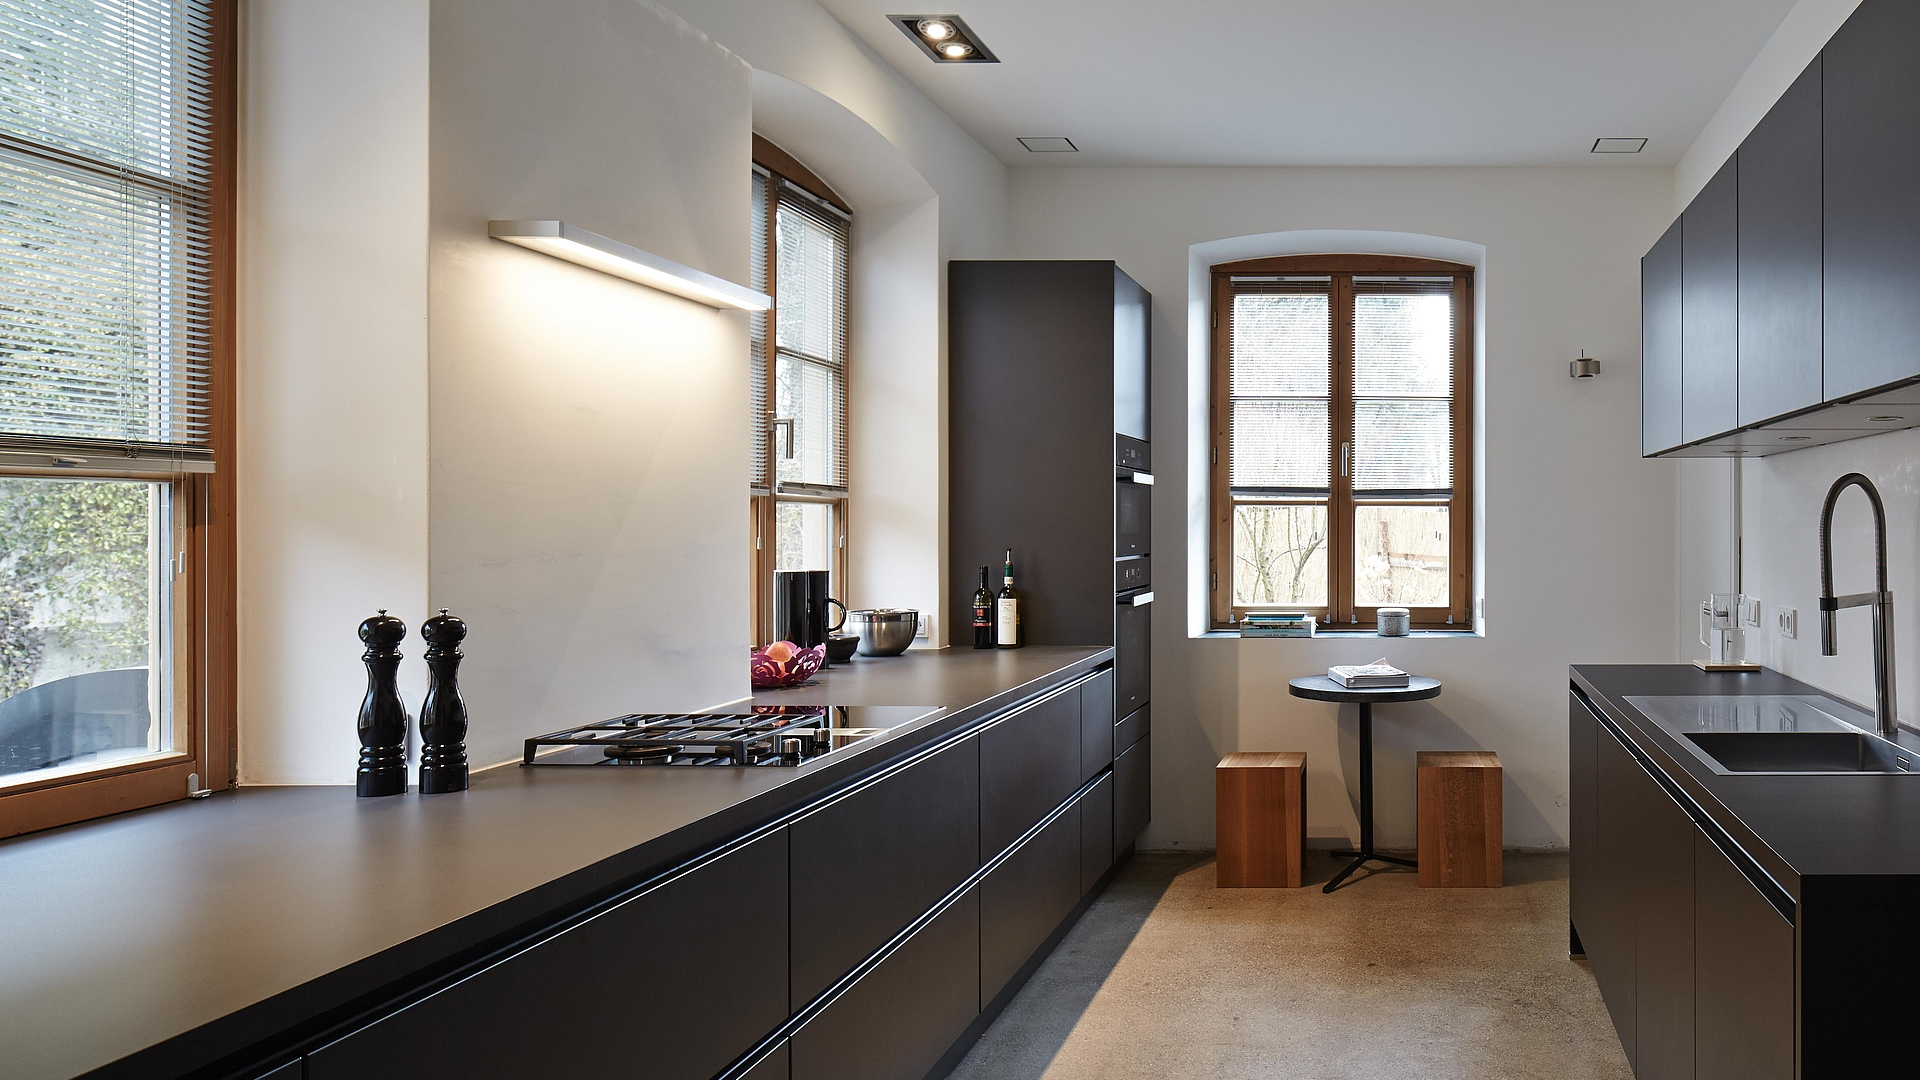 Clean kitchendesign  - Black satin varnish, stainless steel and glass